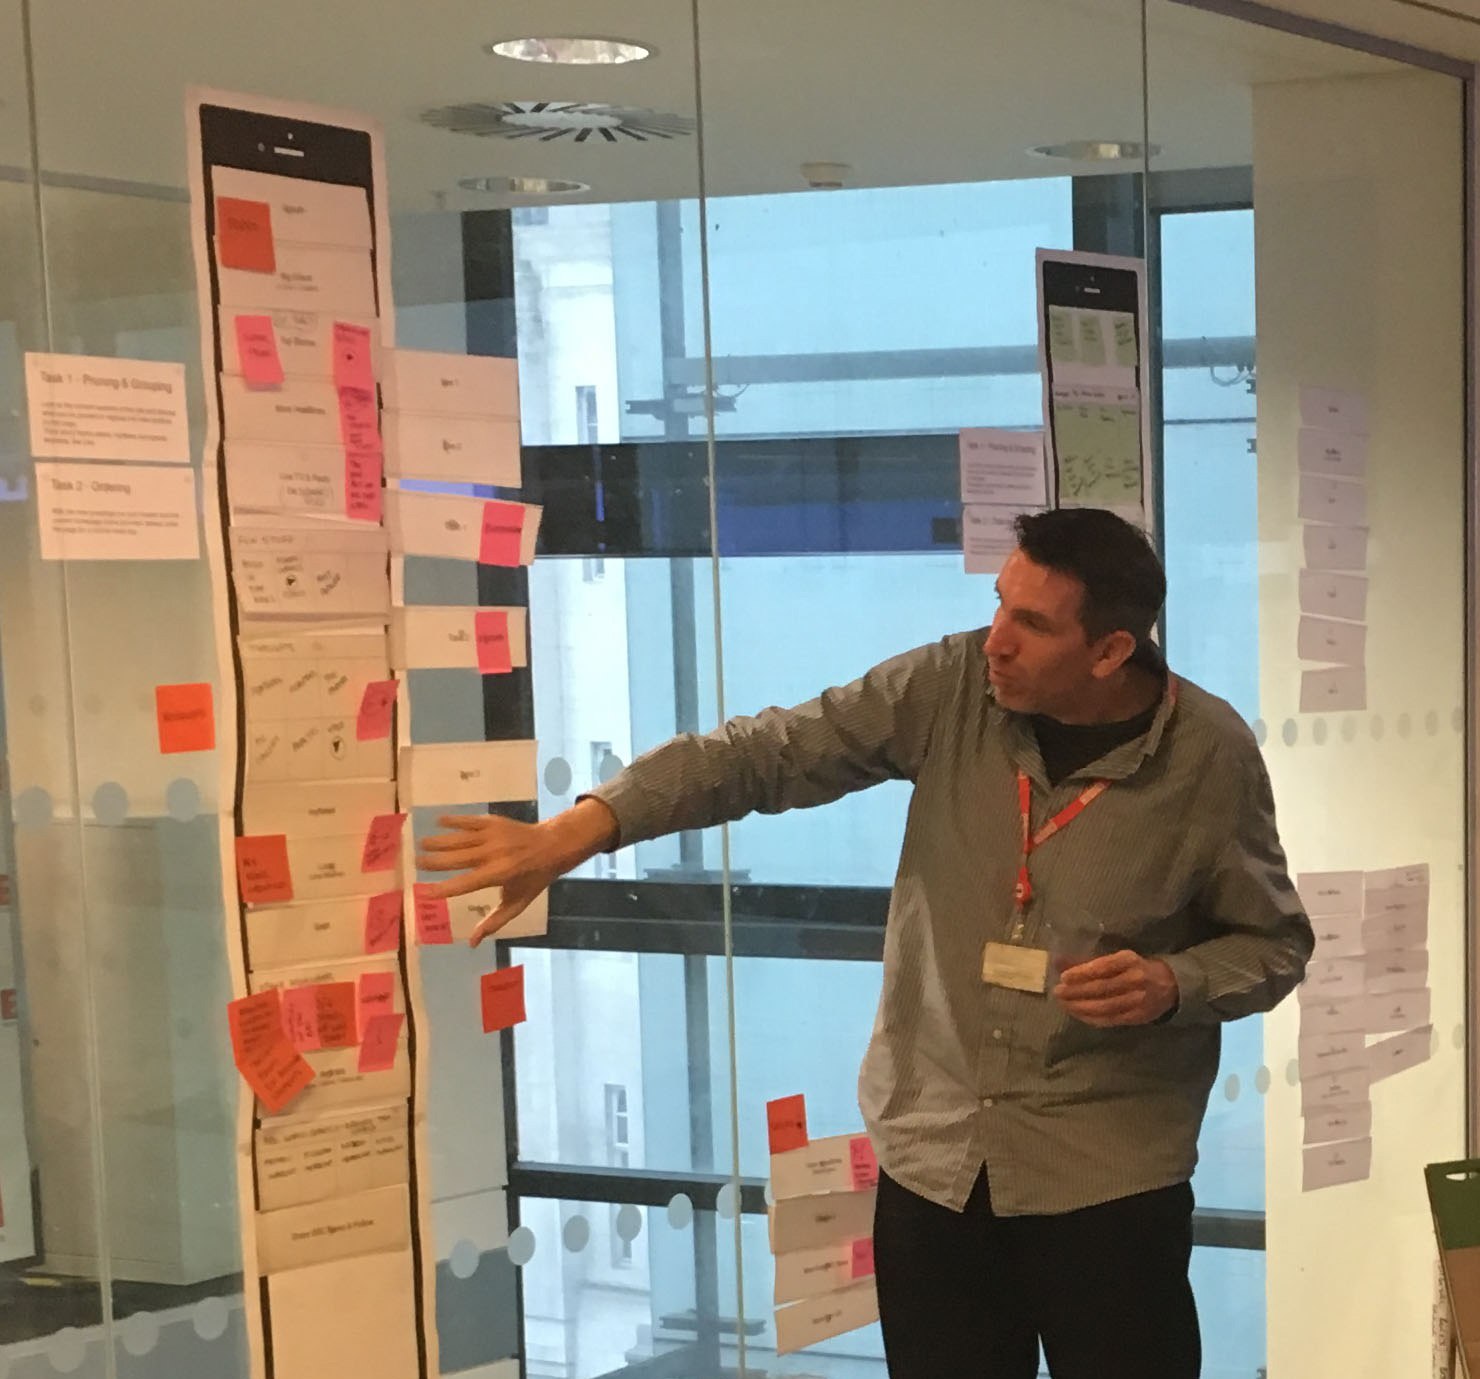 Pruning, Grouping and Ordering content workshop with Editorial and Product stakeholders to define the content strategy for the BBC News homepage